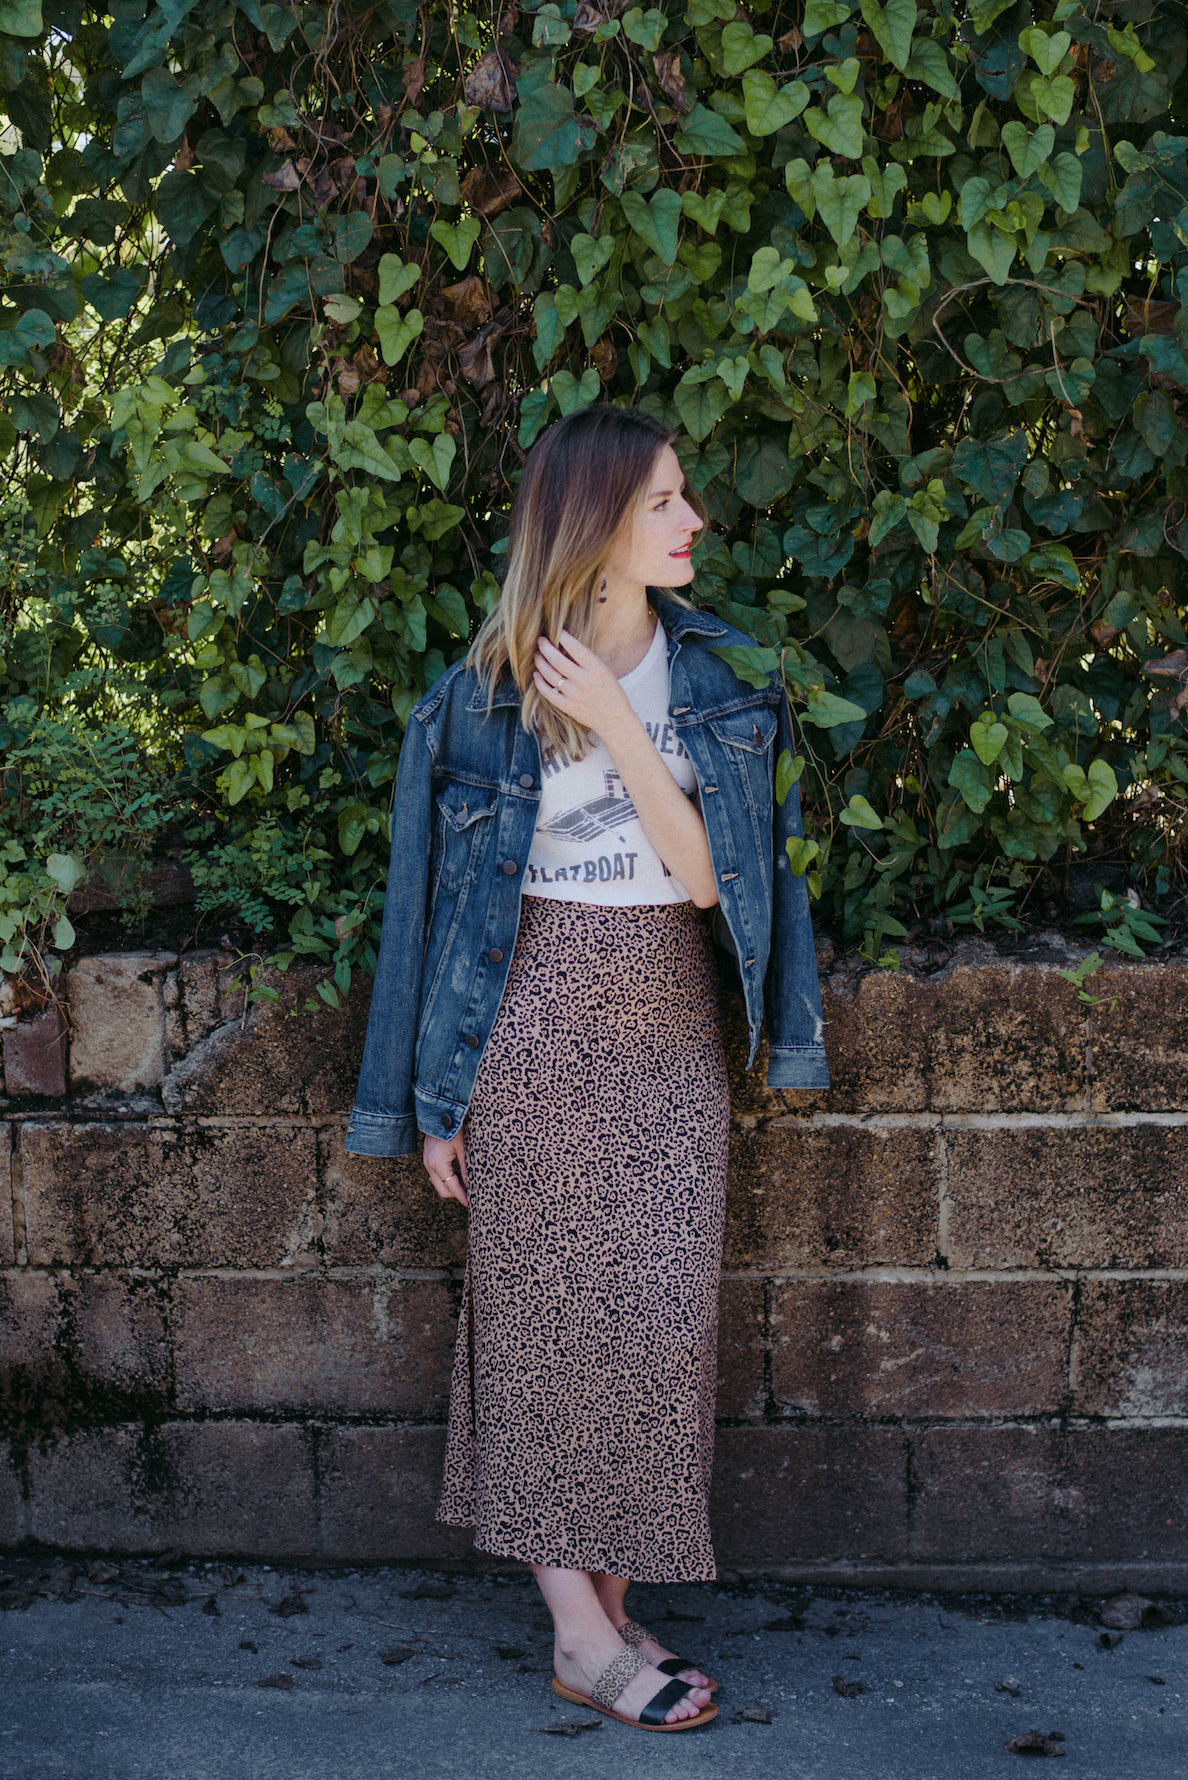 Denim jacket with leopard print skirt // A Week Of  Nashville-Chic Ethical Outfits With Jordan Soderholm, Fashion Director At ABLE on The Good Trade